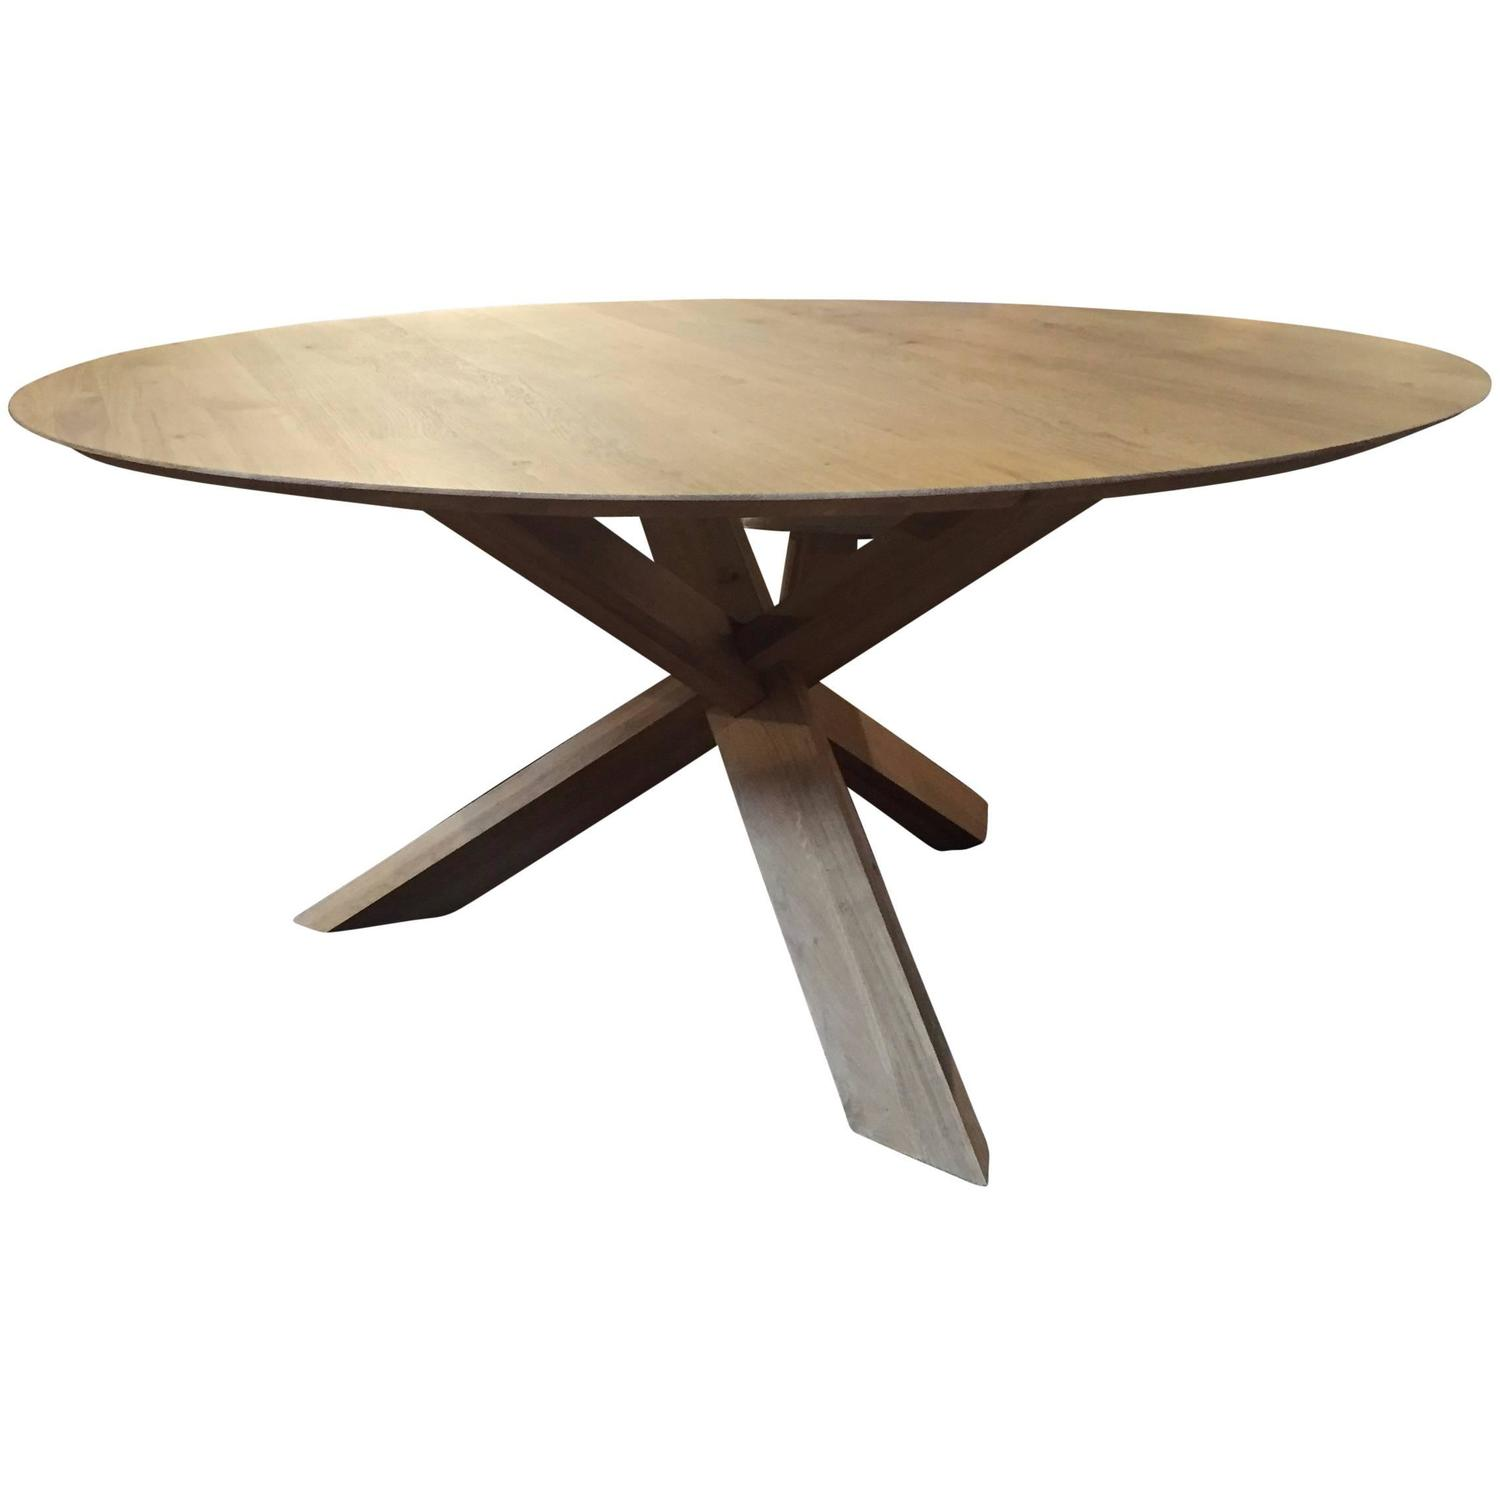 Modern Large White Oak Round Dining Table Haskell Design For Sale At